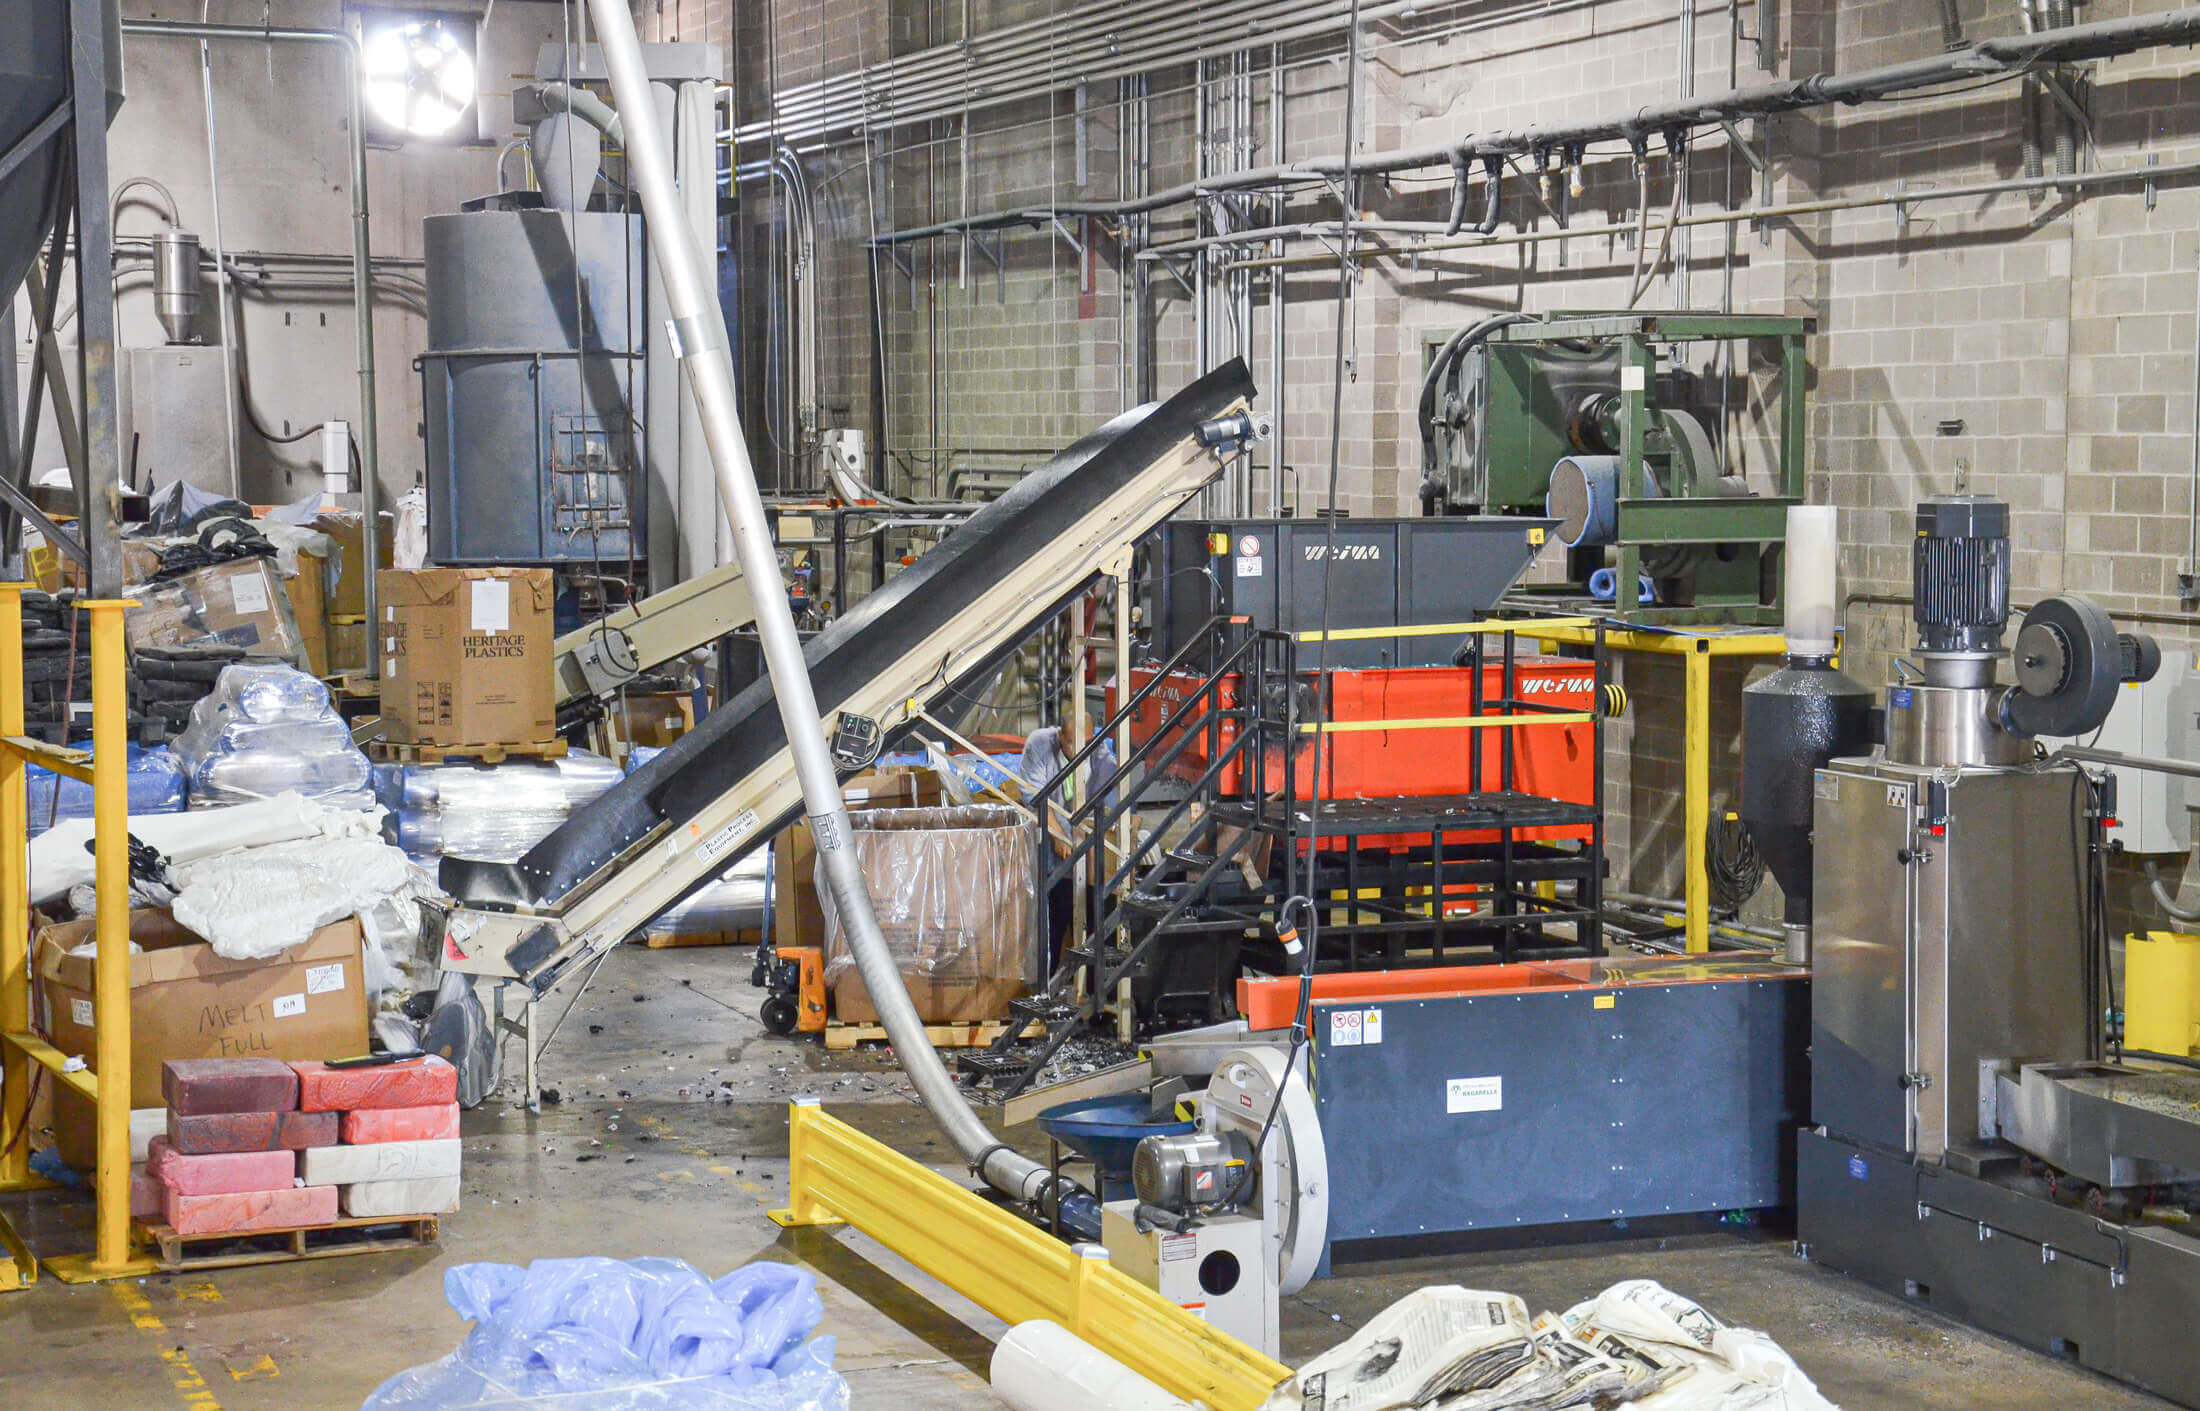 WEIMA WLK 10 shredder for plastic lumps in production line